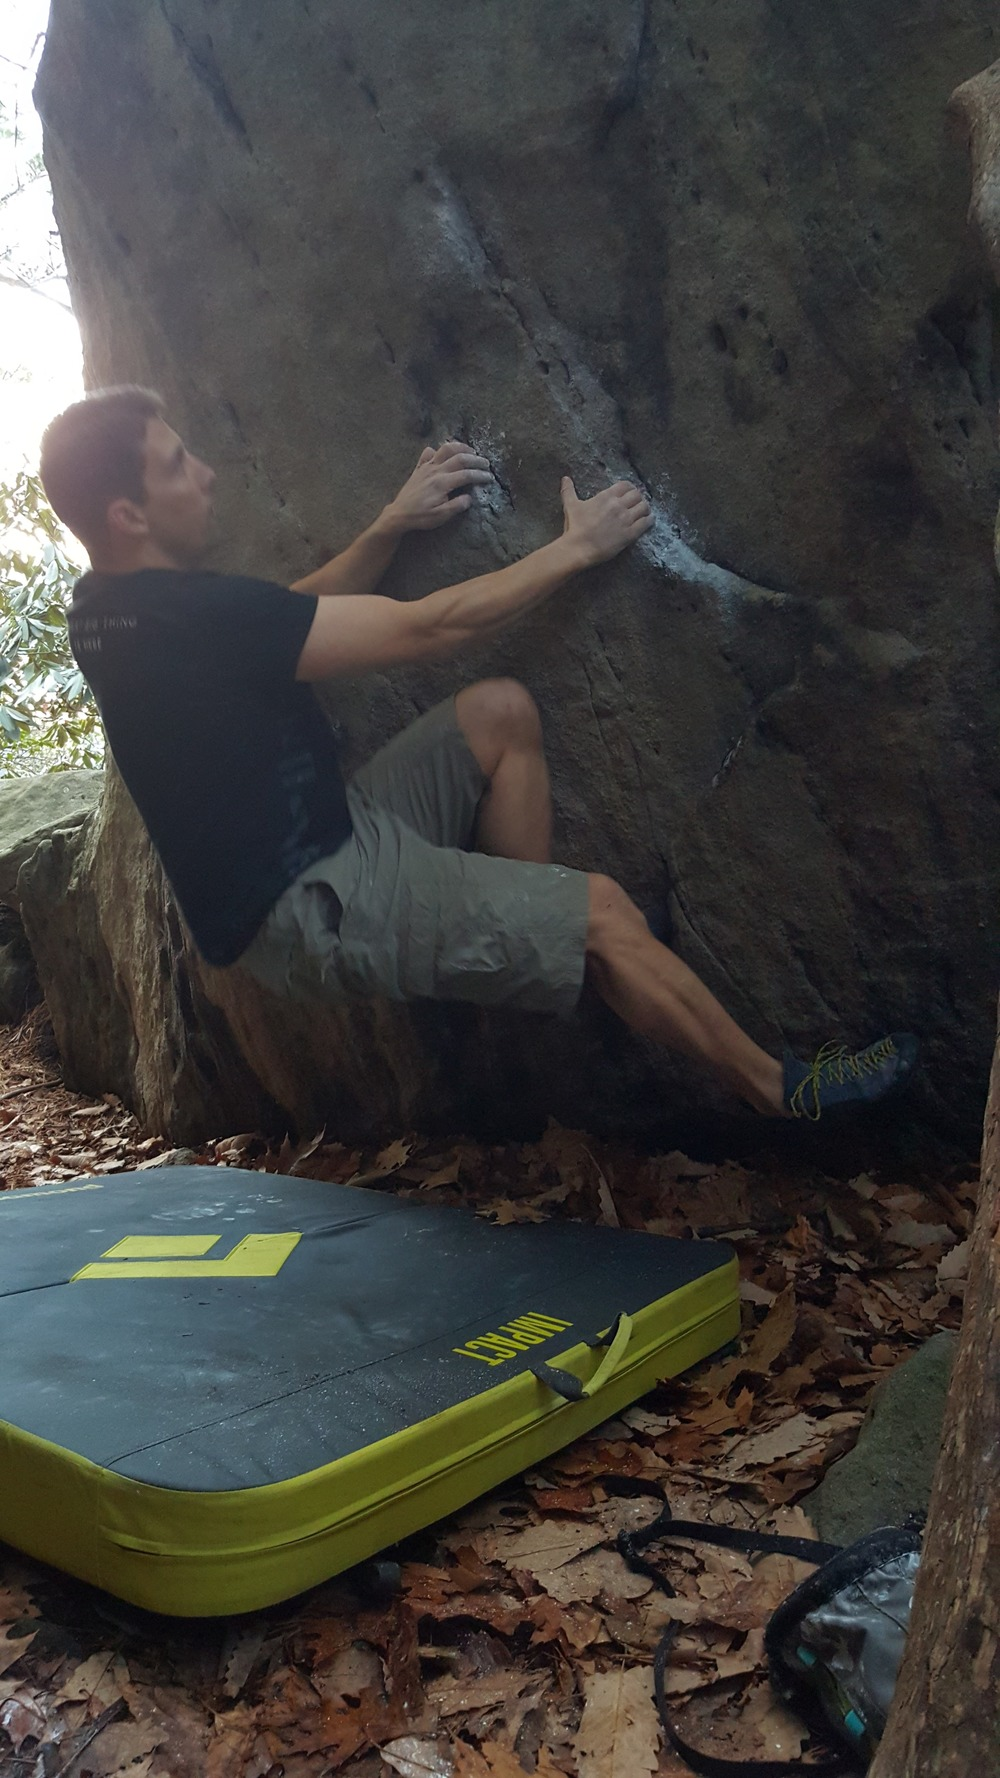 Climbing and Bouldering at Coopers Rock